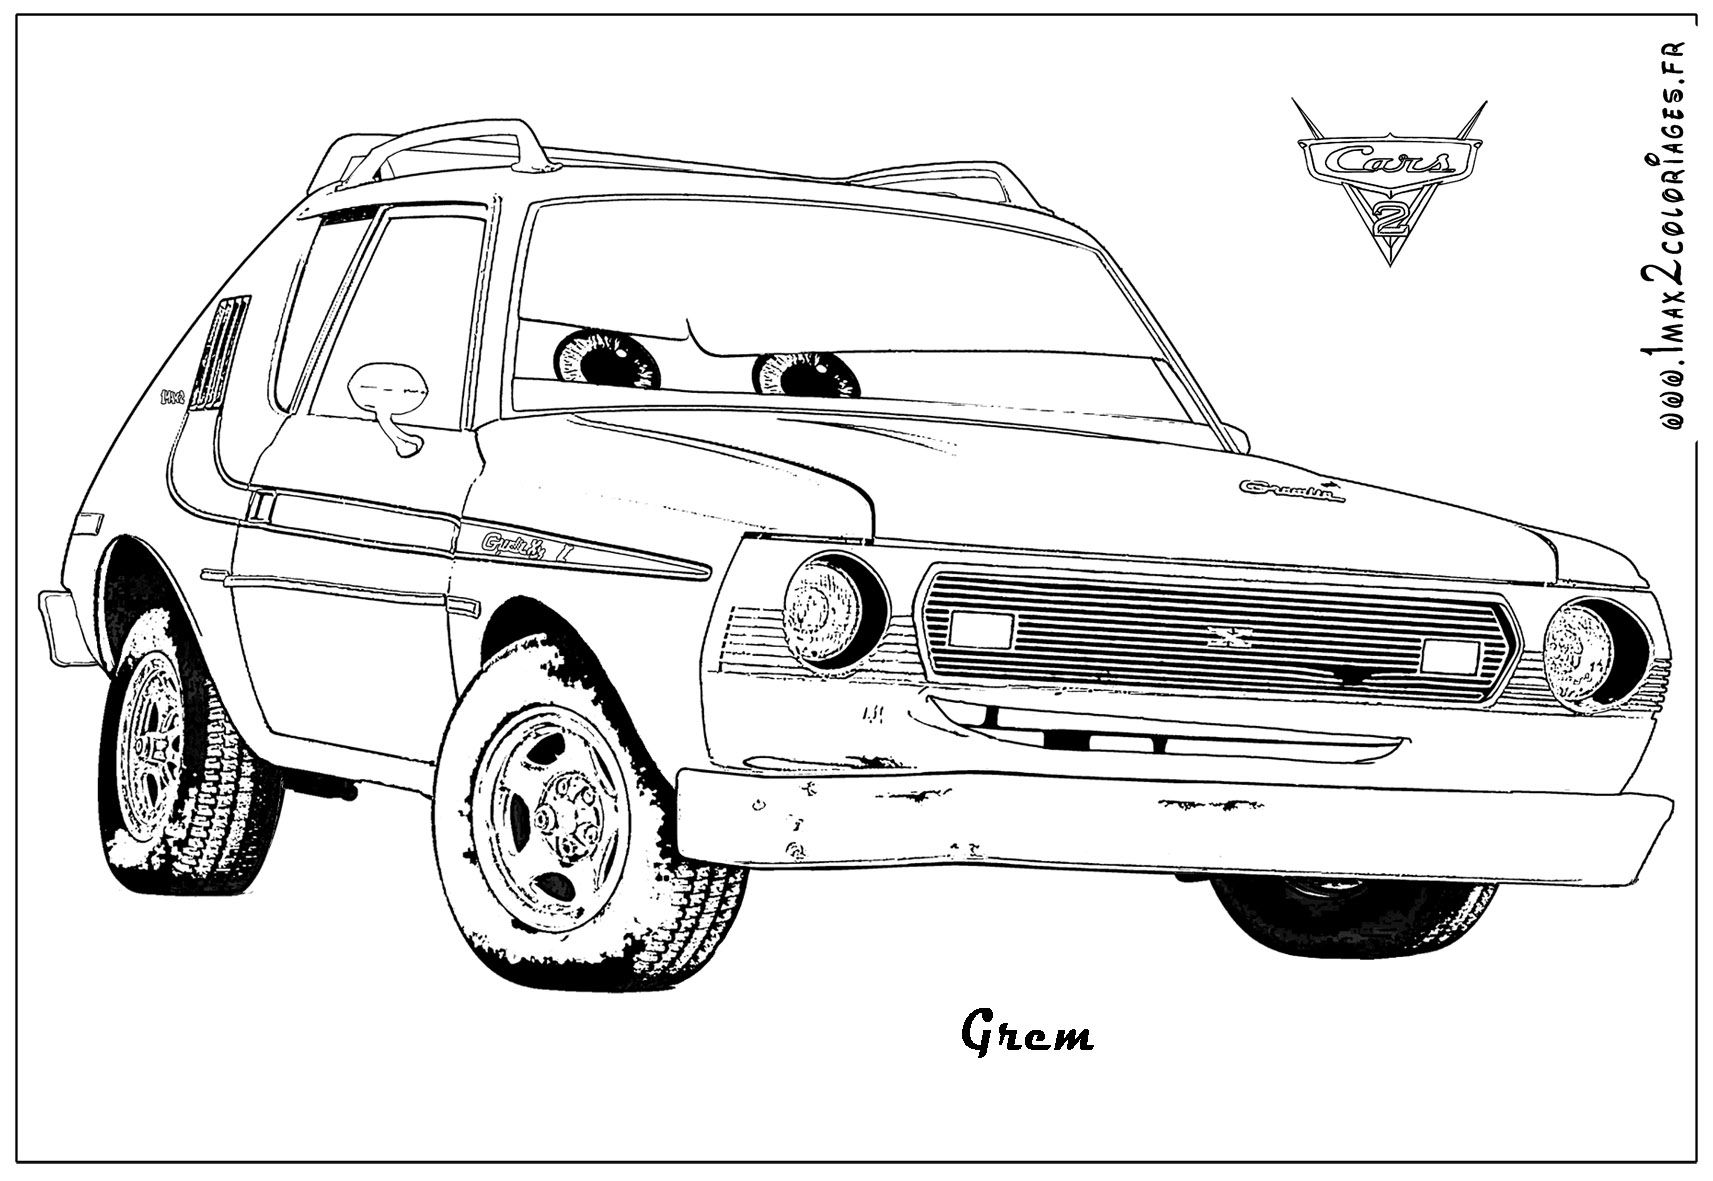 redline coloring pages | Cars 2 Printable Coloring Pages | Grem cars 2 Colouring ...